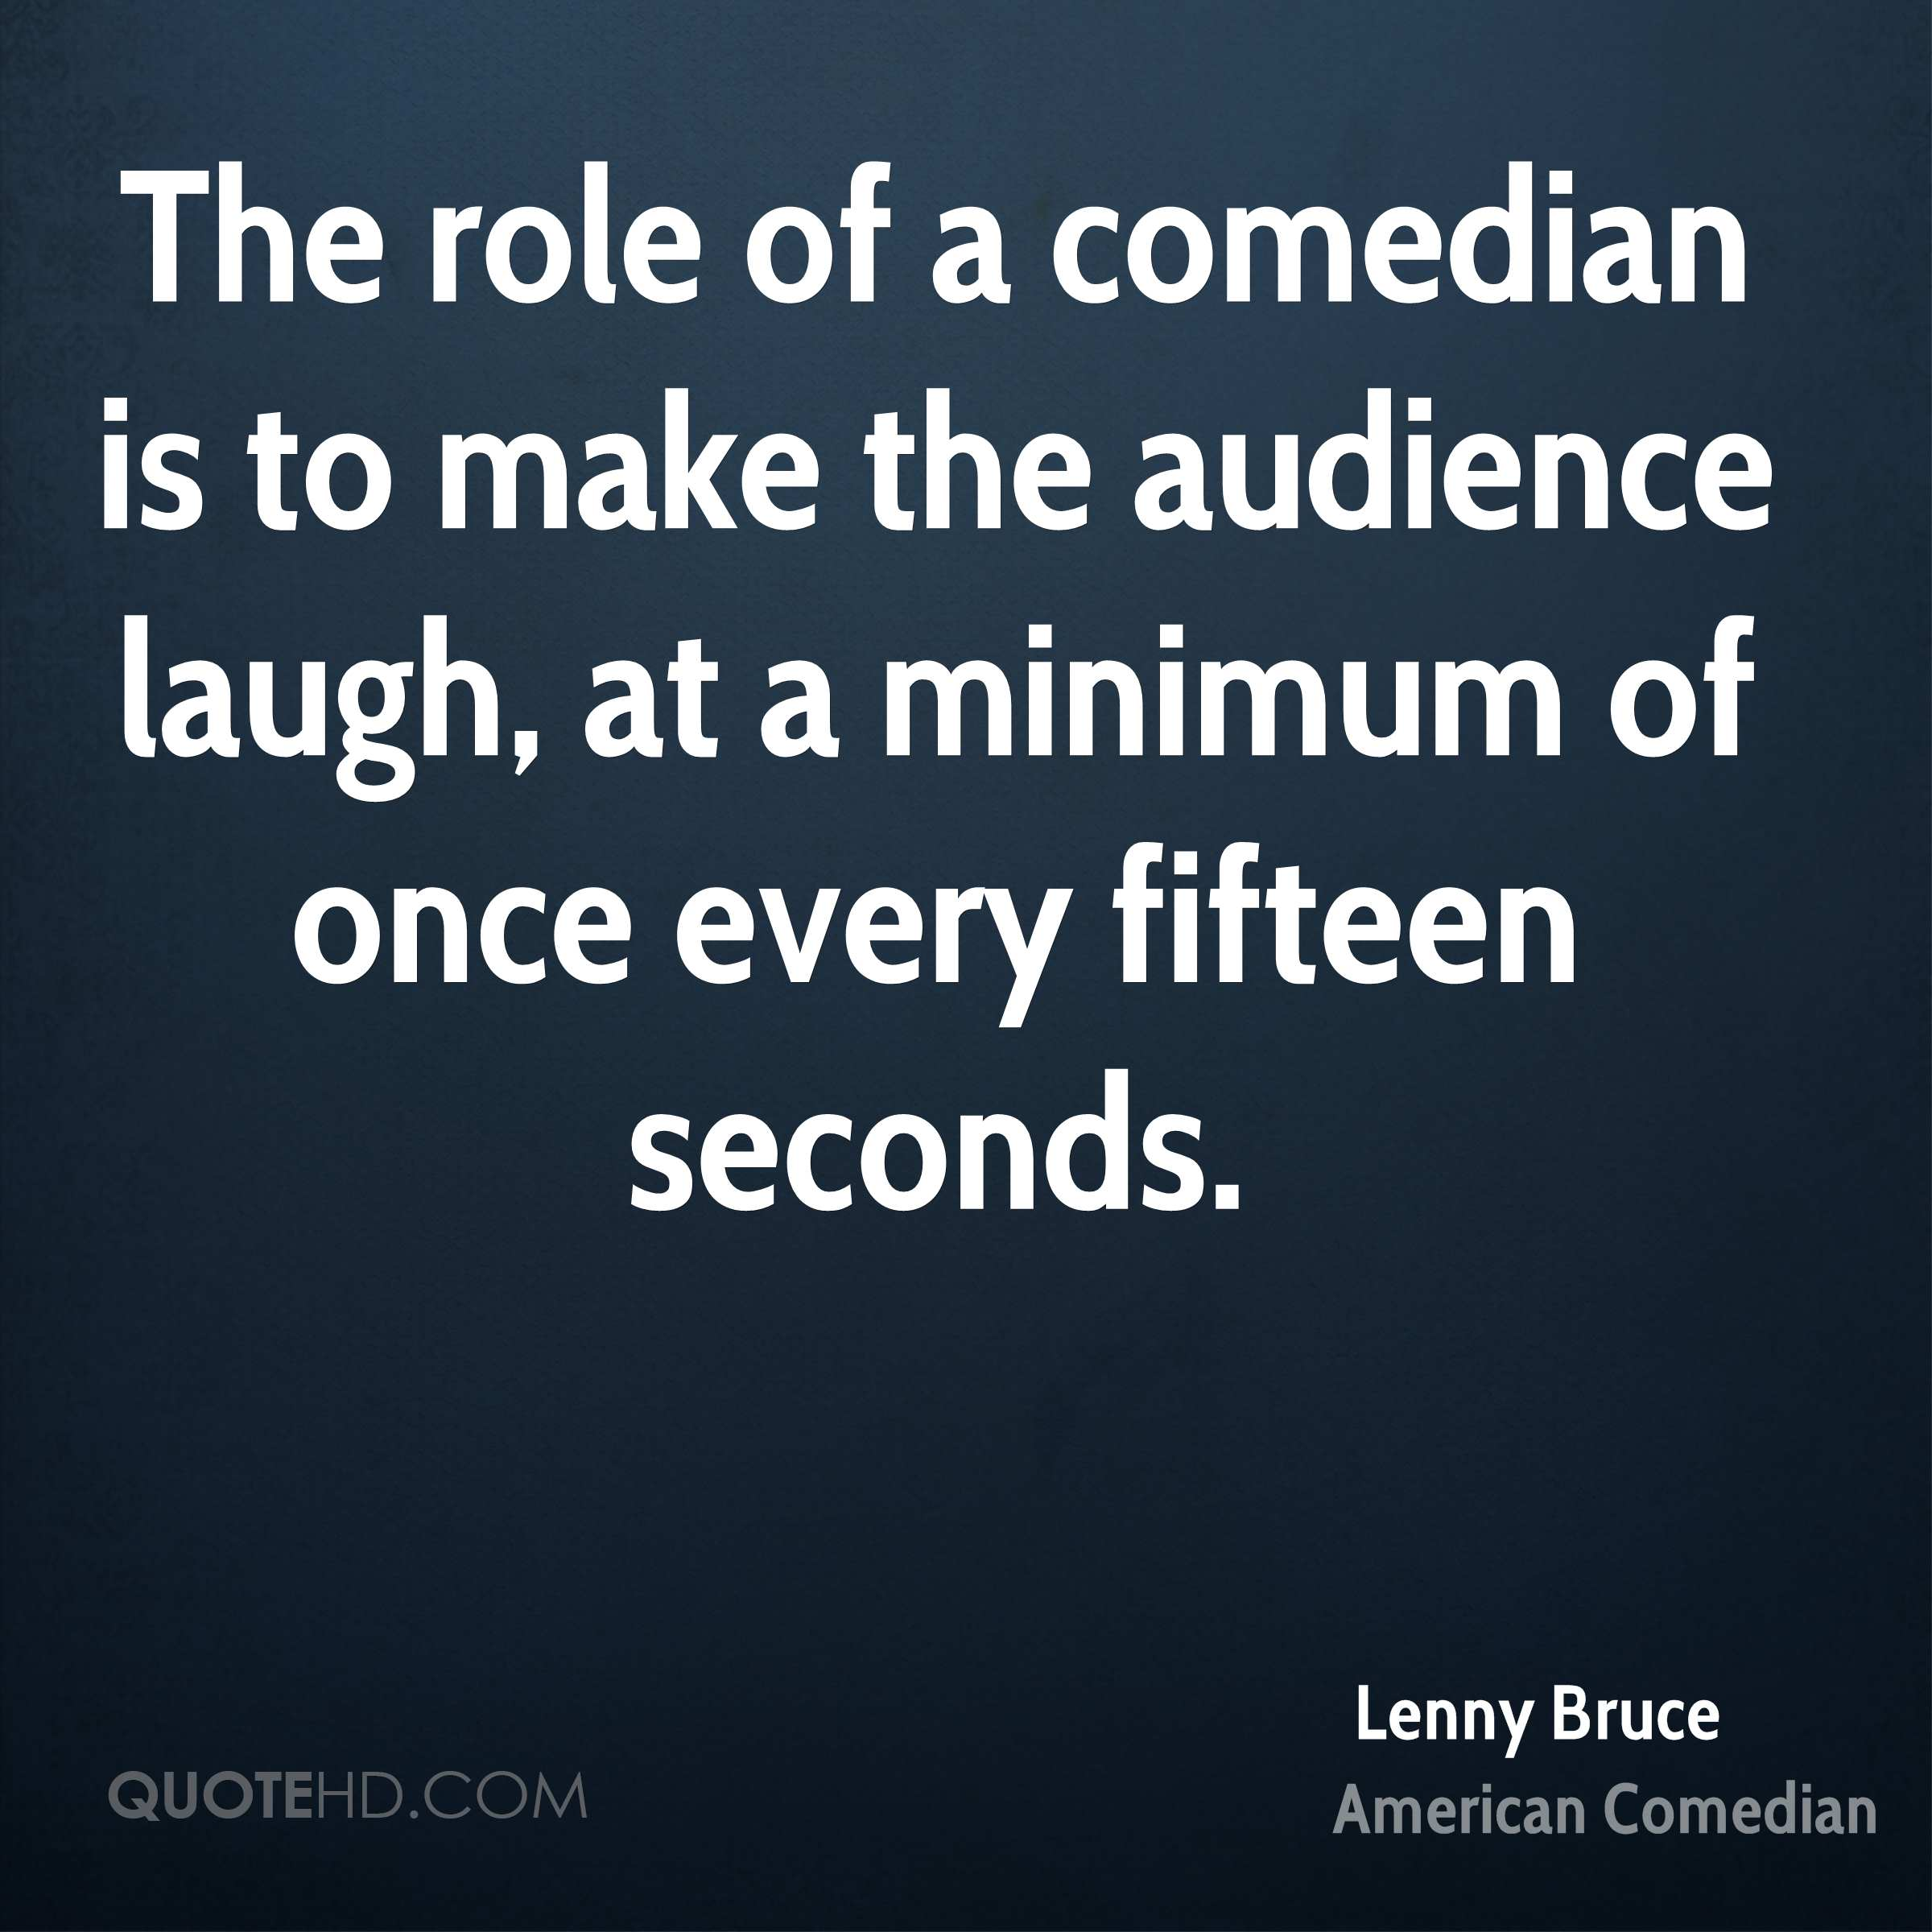 The role of a comedian is to make the audience laugh, at a minimum of once every fifteen seconds.